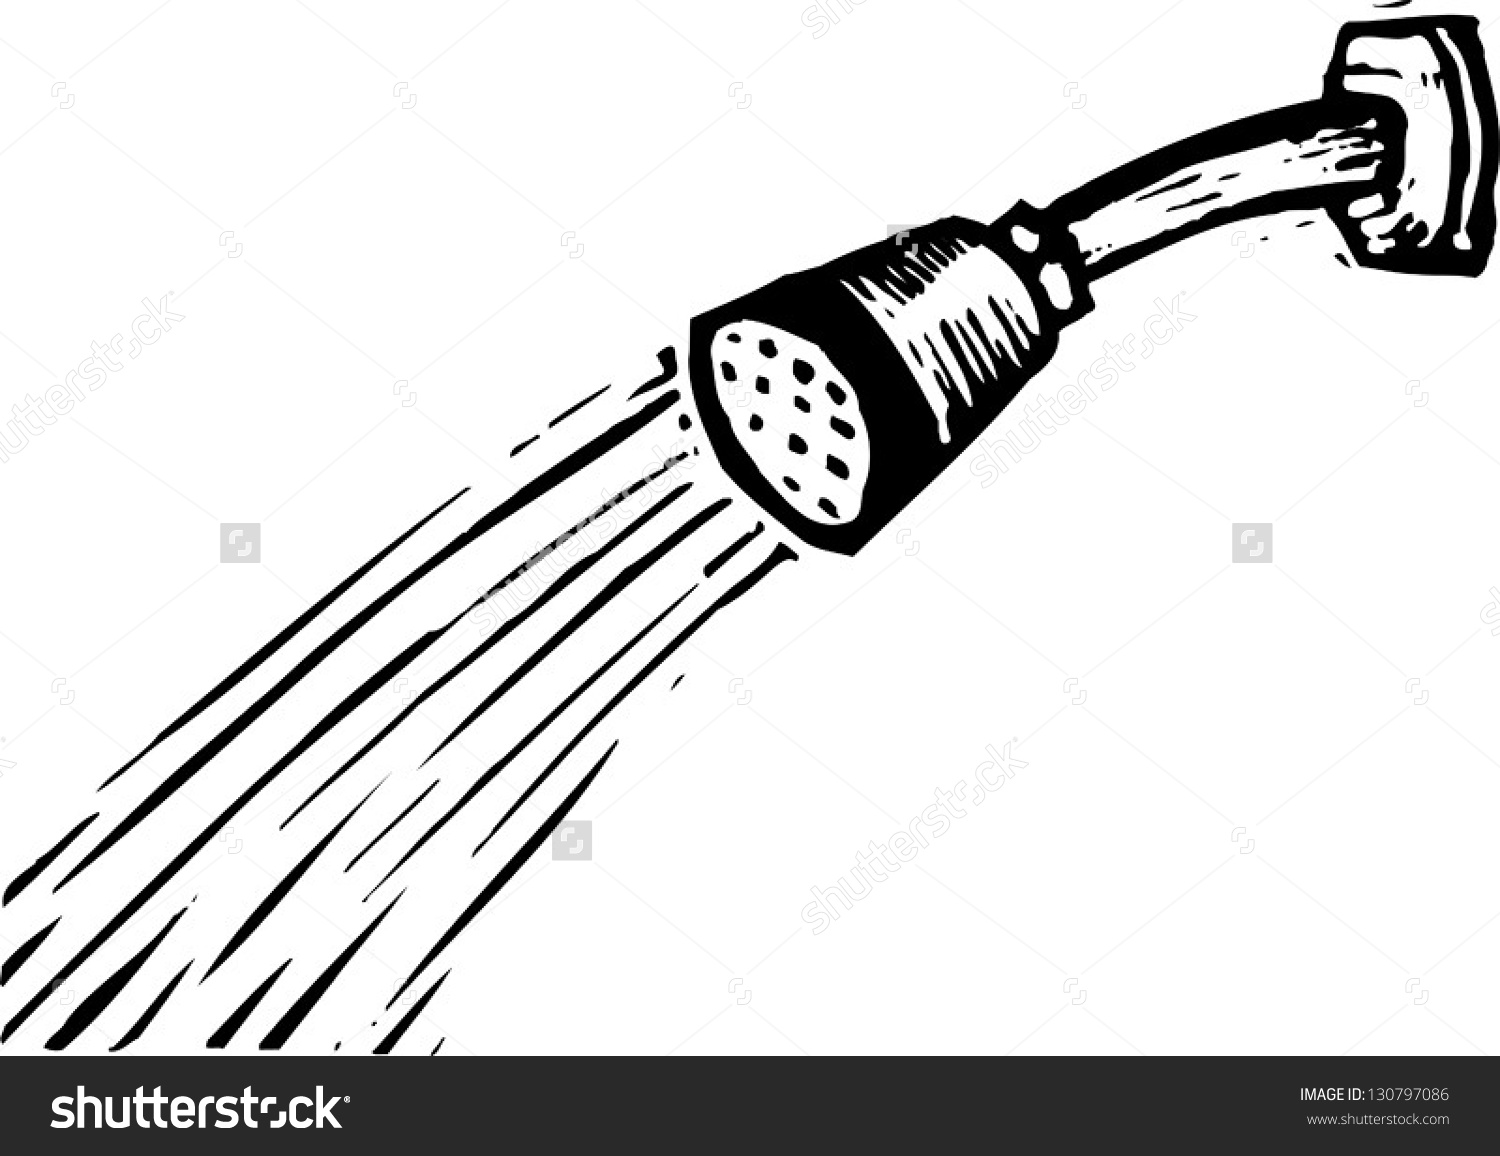 Shower clip art clipart free Shower Clipart Page 1 clipart free